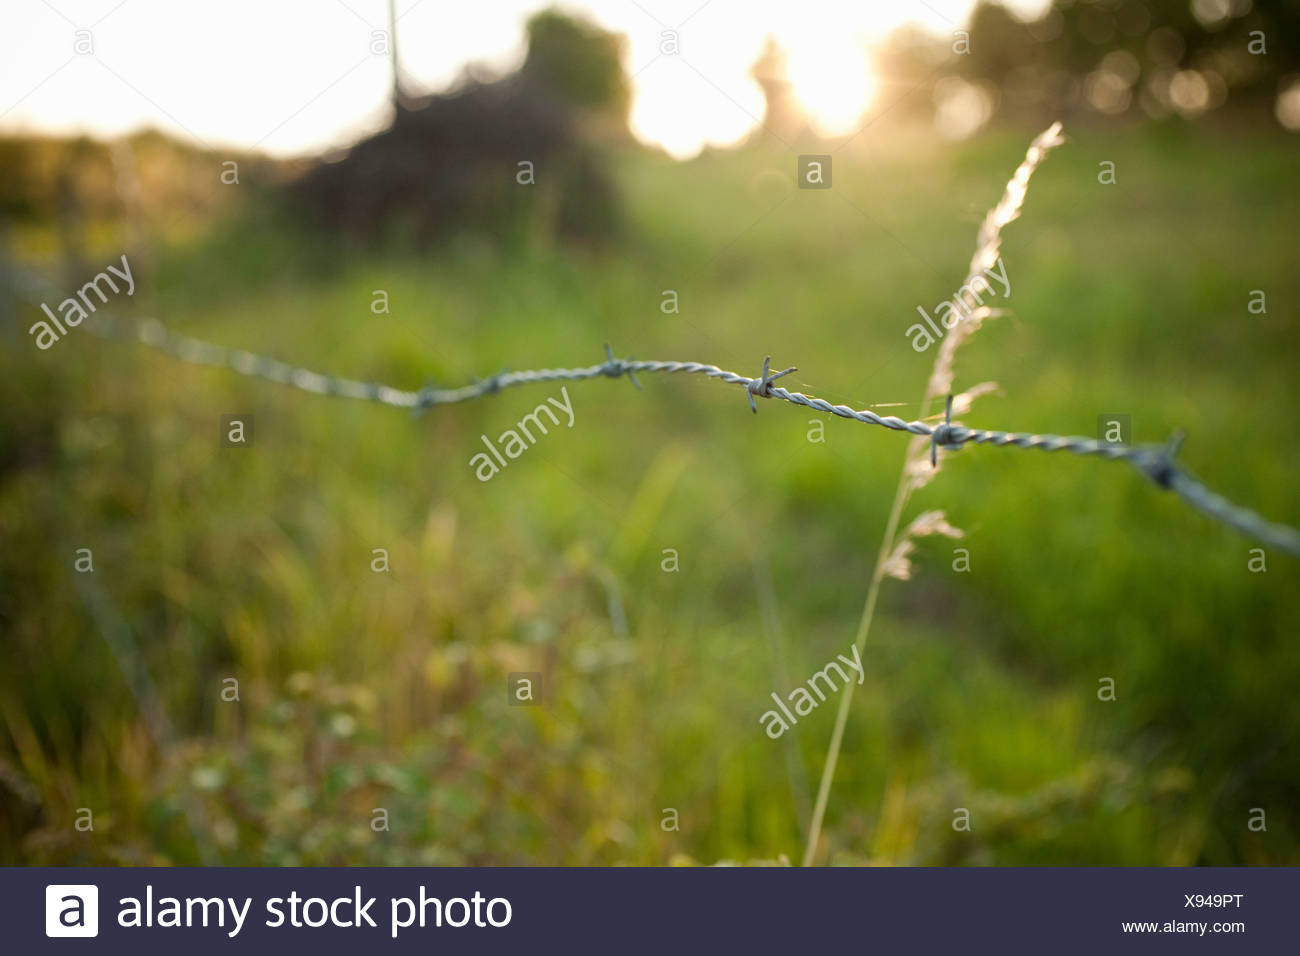 Barbed wire fence in field Stock Photo